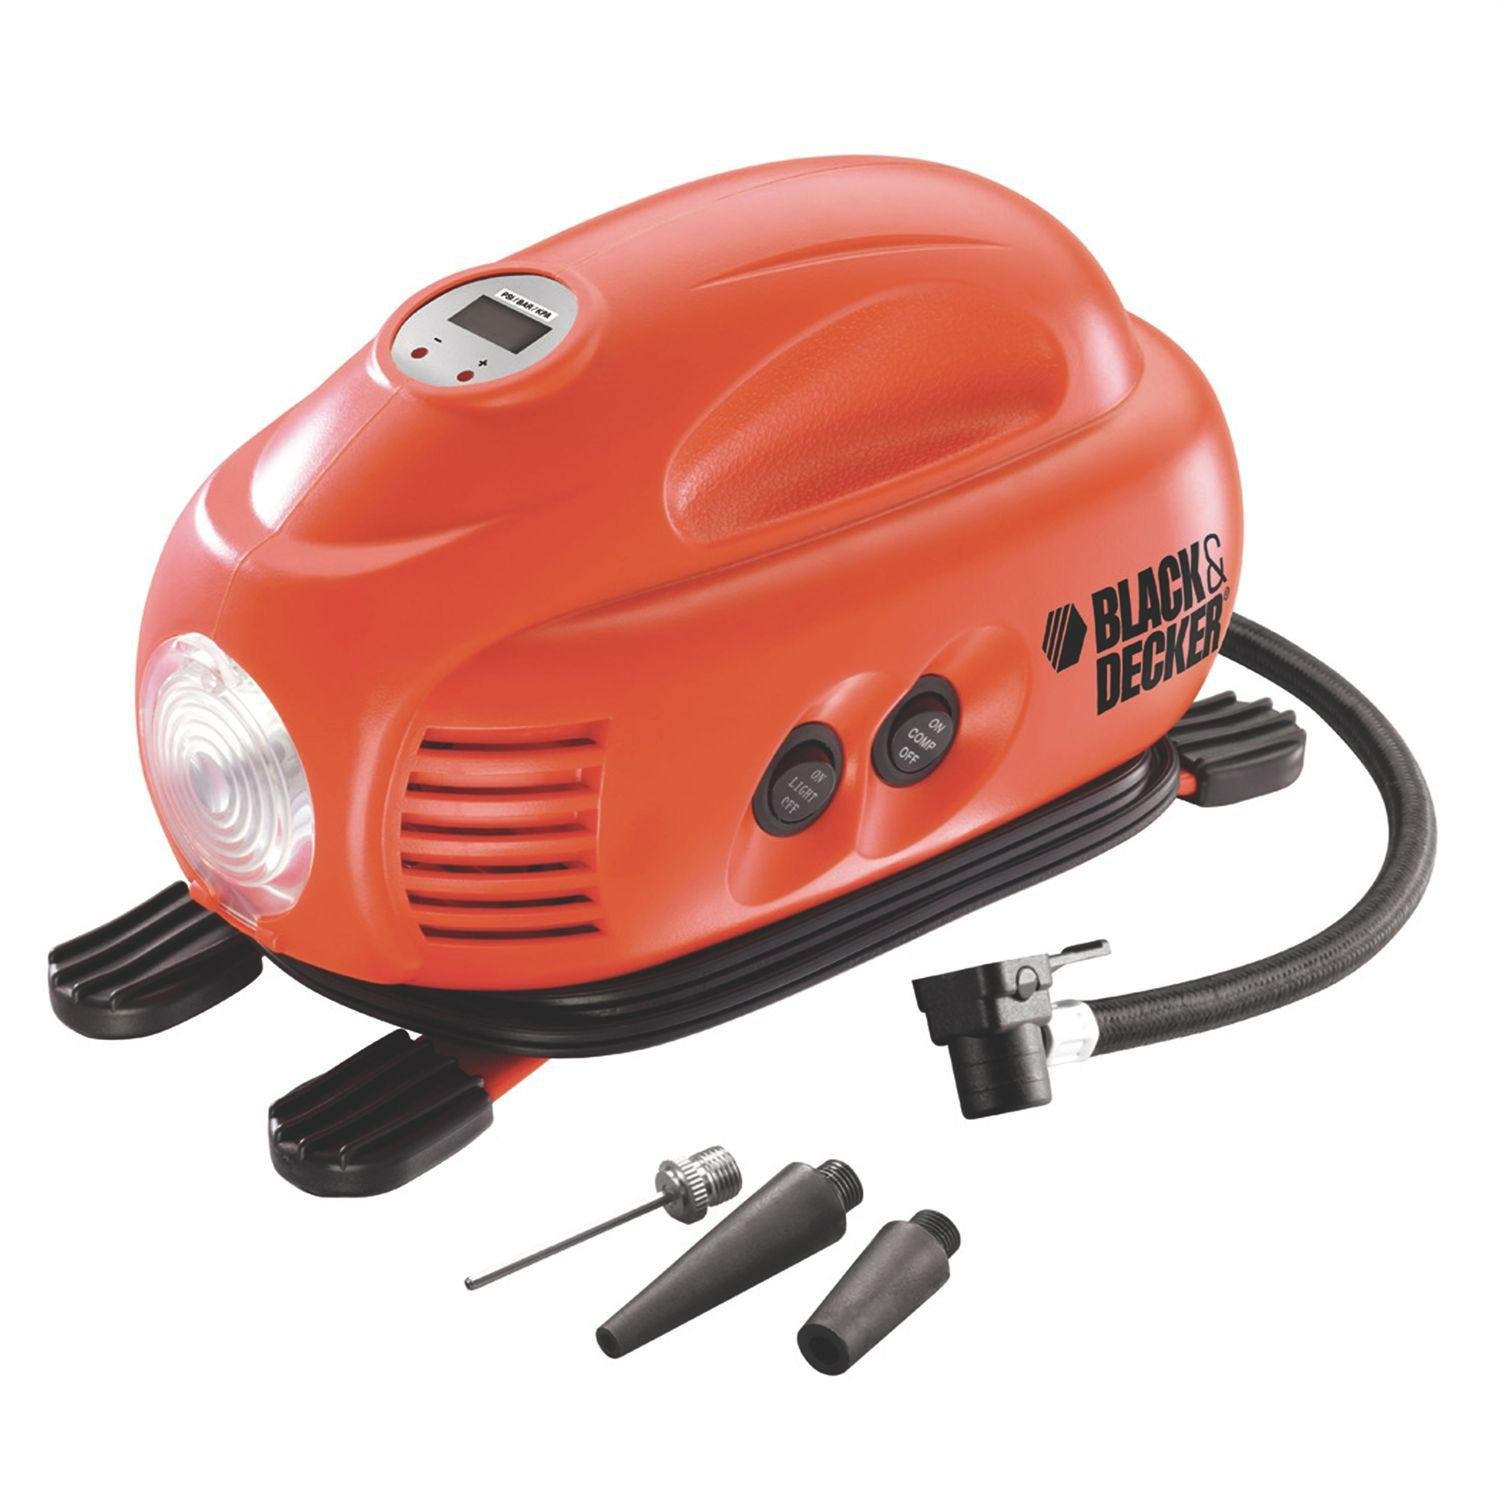 Black&Decker black decker kx1692 157011 теплопистолет